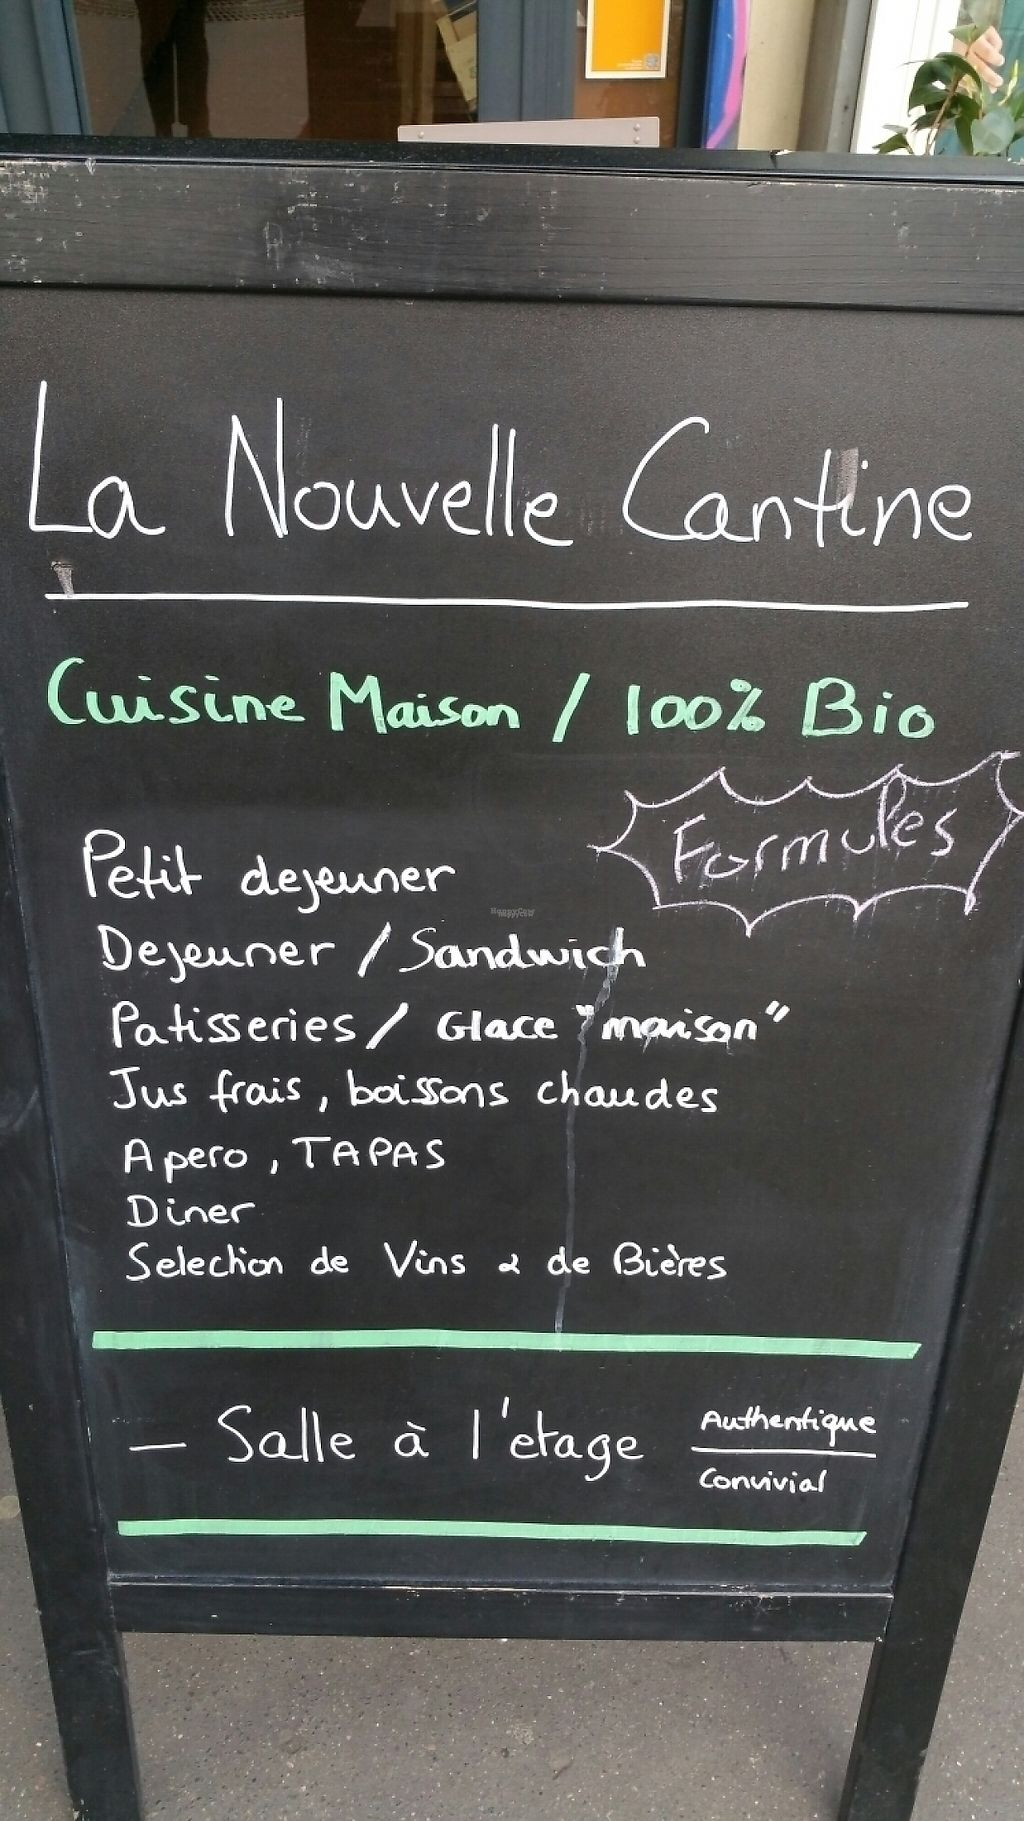 """Photo of La Nouvelle Cantine  by <a href=""""/members/profile/Oxygene"""">Oxygene</a> <br/>The menu <br/> April 18, 2017  - <a href='/contact/abuse/image/88907/249684'>Report</a>"""